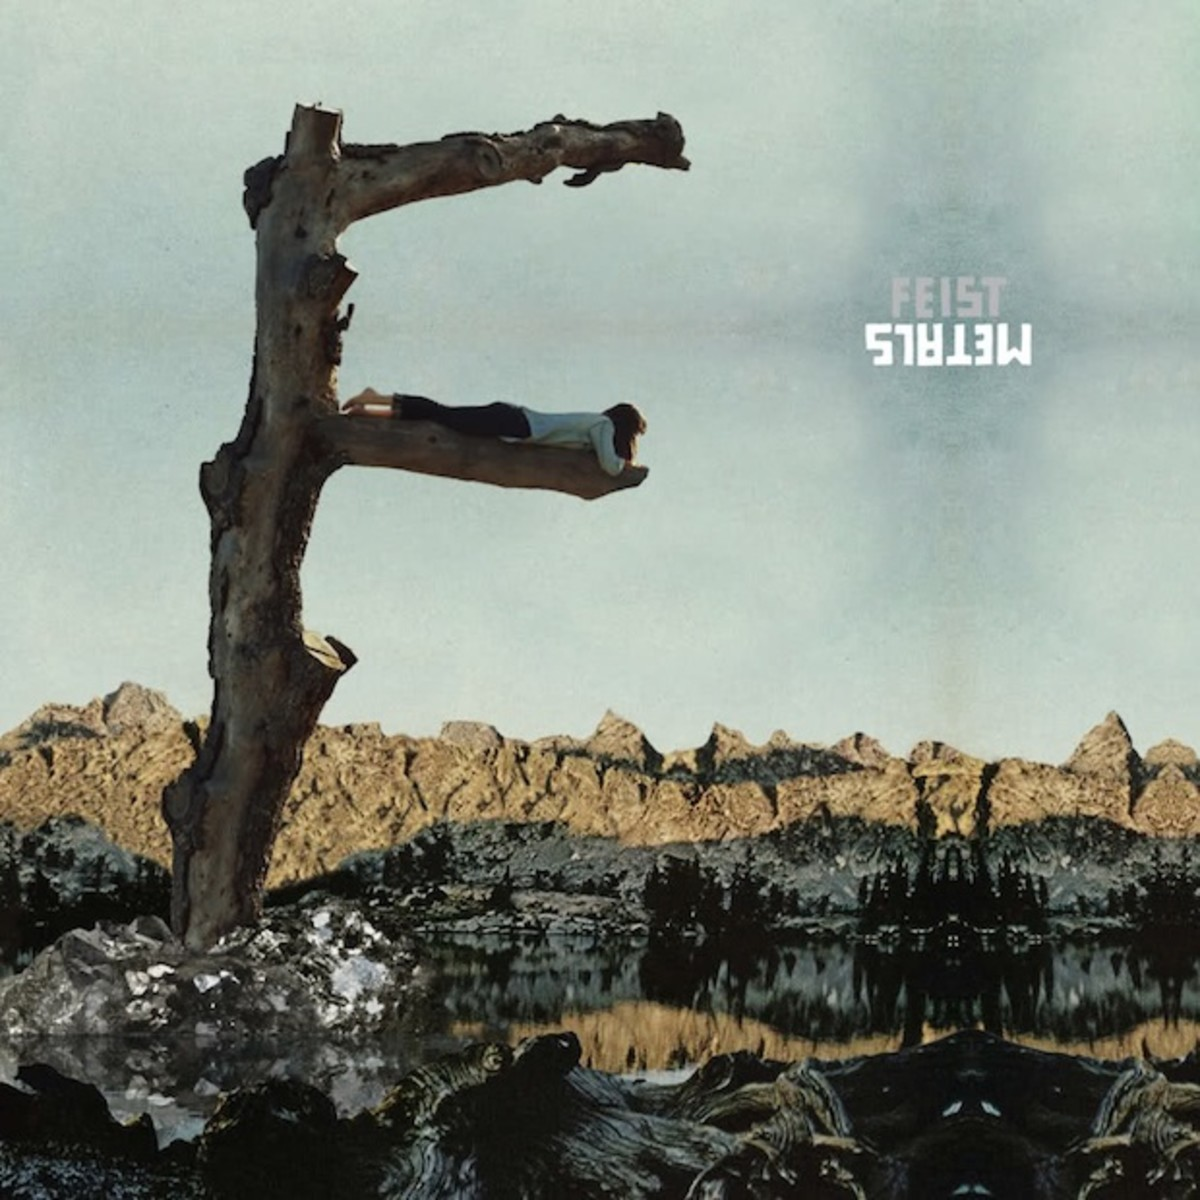 FEIST   Metals, 2011, Chilly Gonzales, Mocky, & Valgeir Sigurosson, 49:58